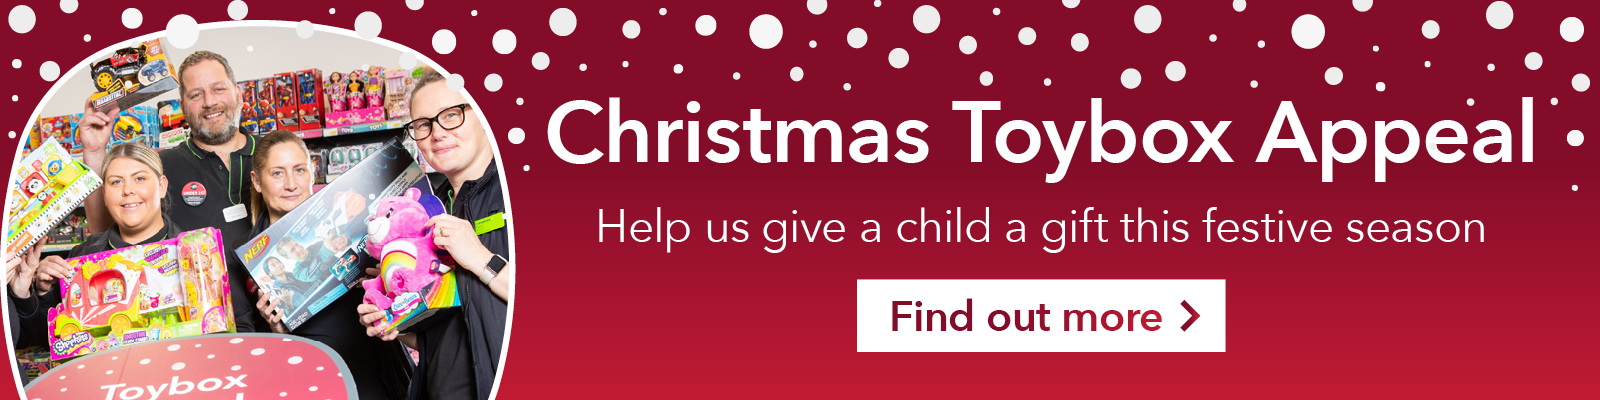 Christmas Toybox Appeal 2019